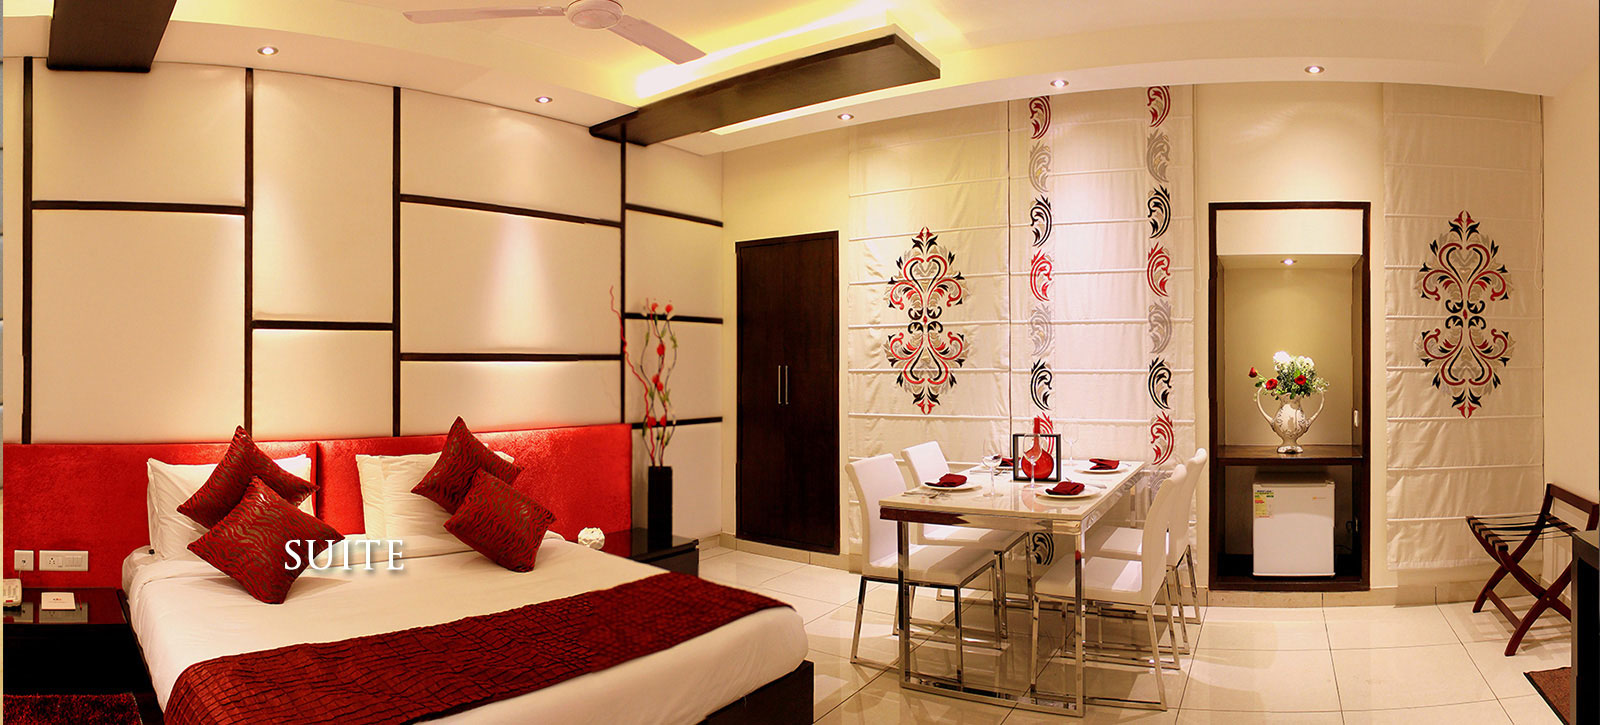 amrapali Grand Hotel Room